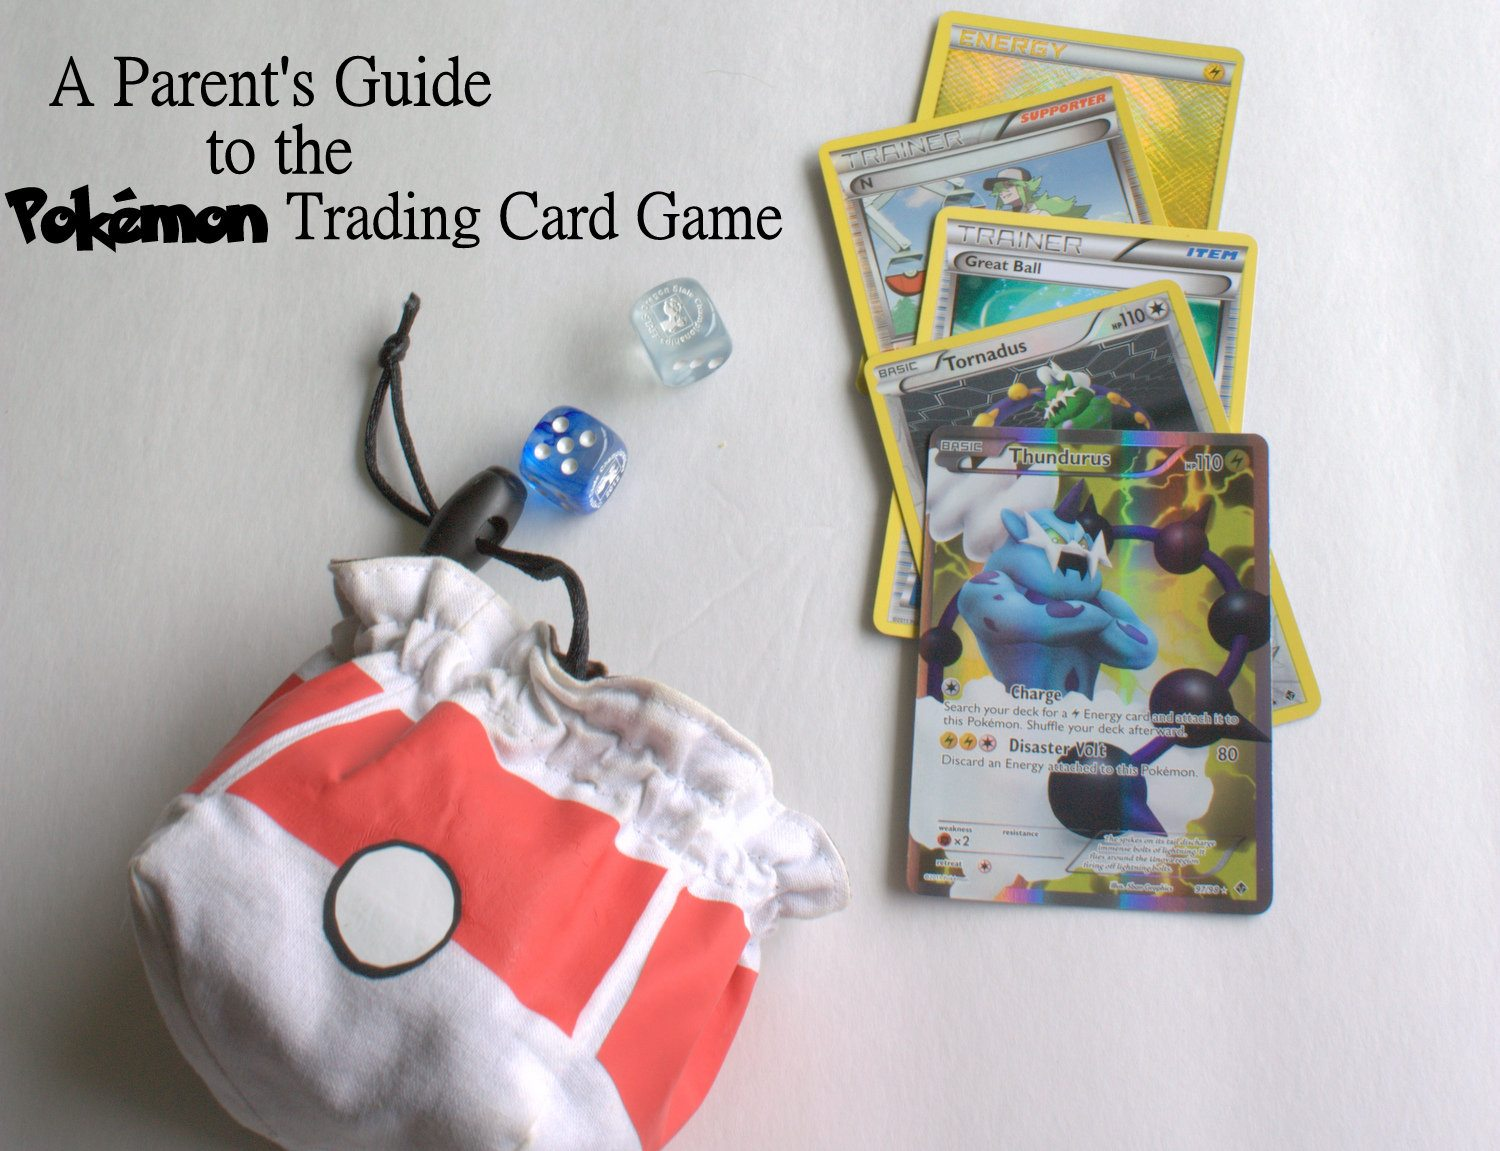 Do your kids ask how to play Pokemon? Here's GeekMom's Guide to Playing Pokemon Part 1: Deck Building Images: Cathe Post